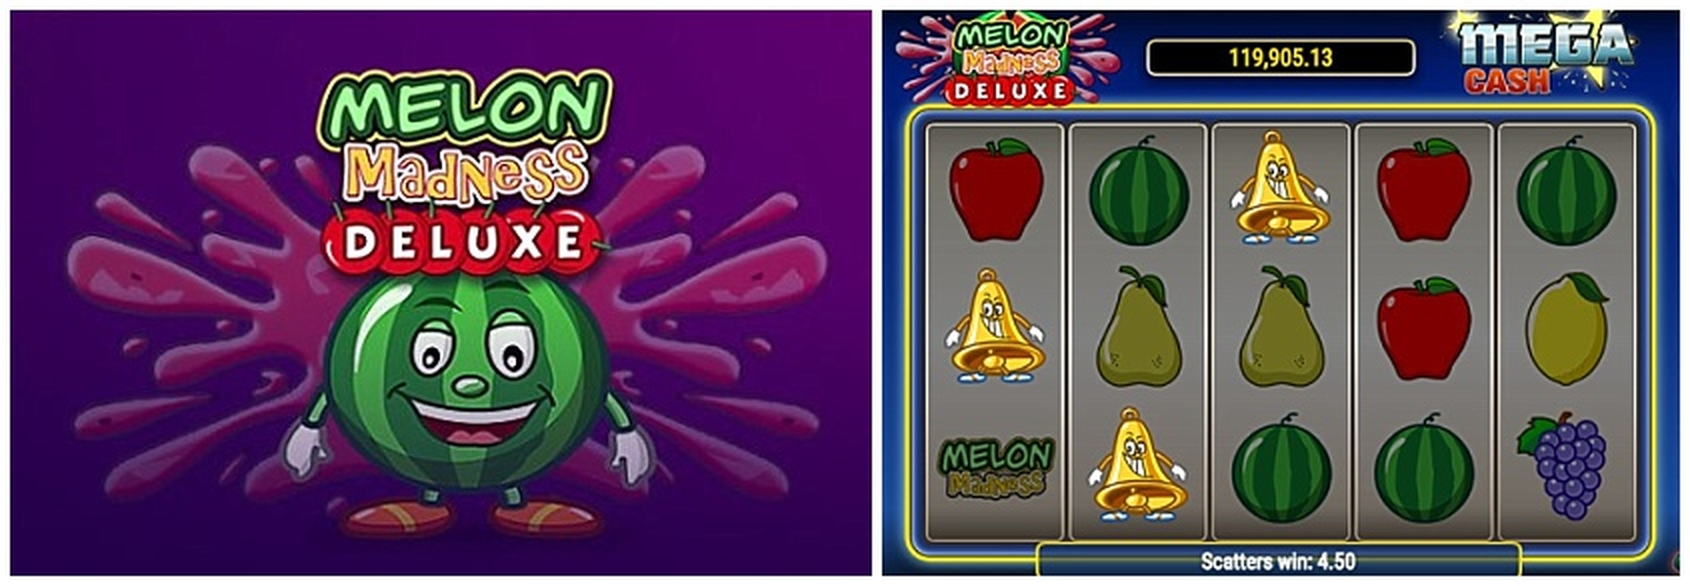 Win Money in Melon Madness Deluxe Free Slot Game by BwinParty